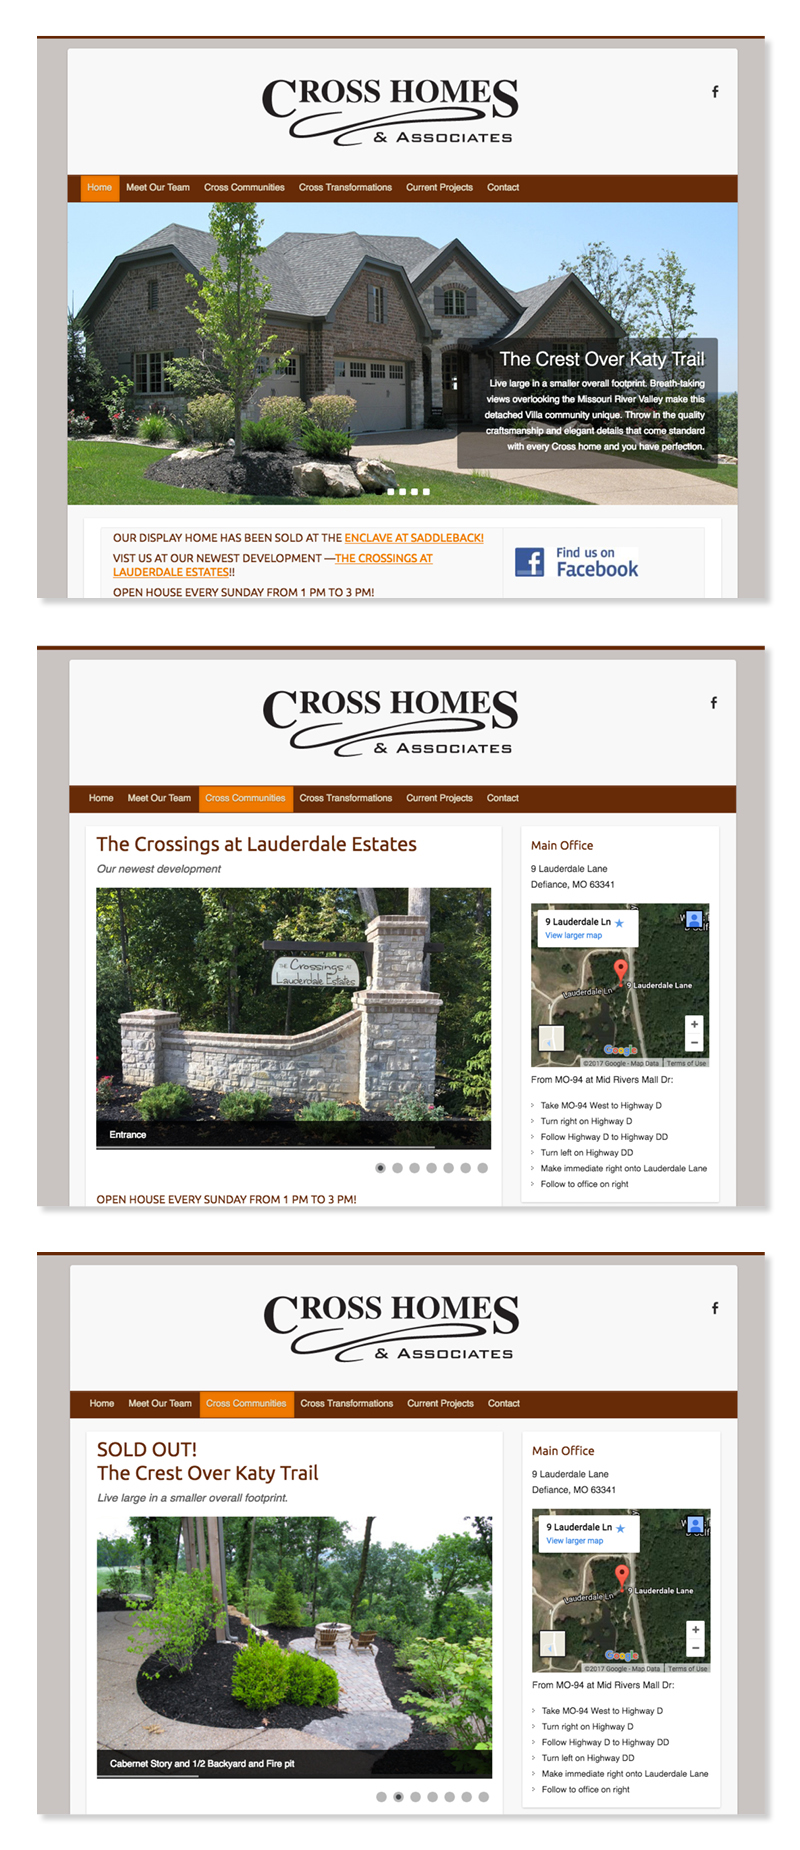 Cross Homes and Associates Website